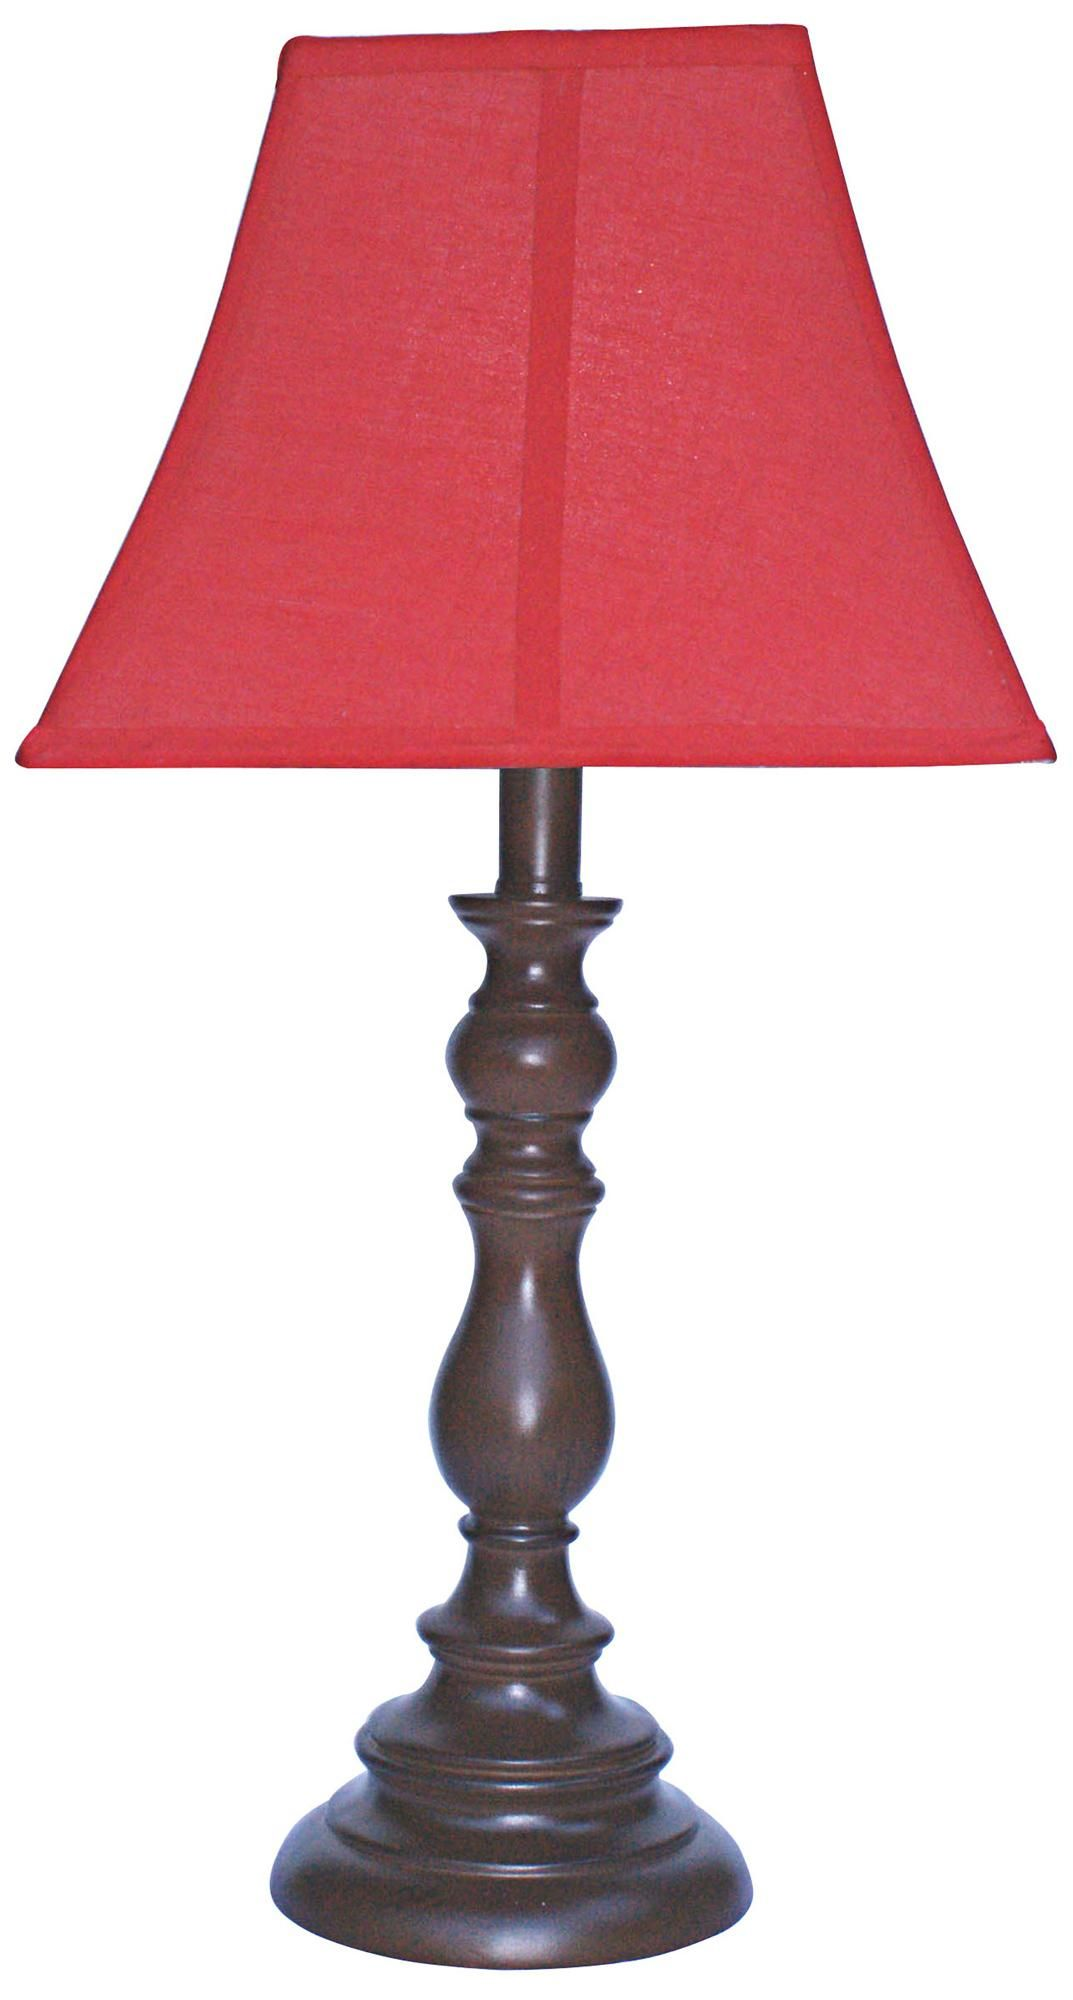 Red Shade With Brown Candlestick Base Table Lamp In 2019